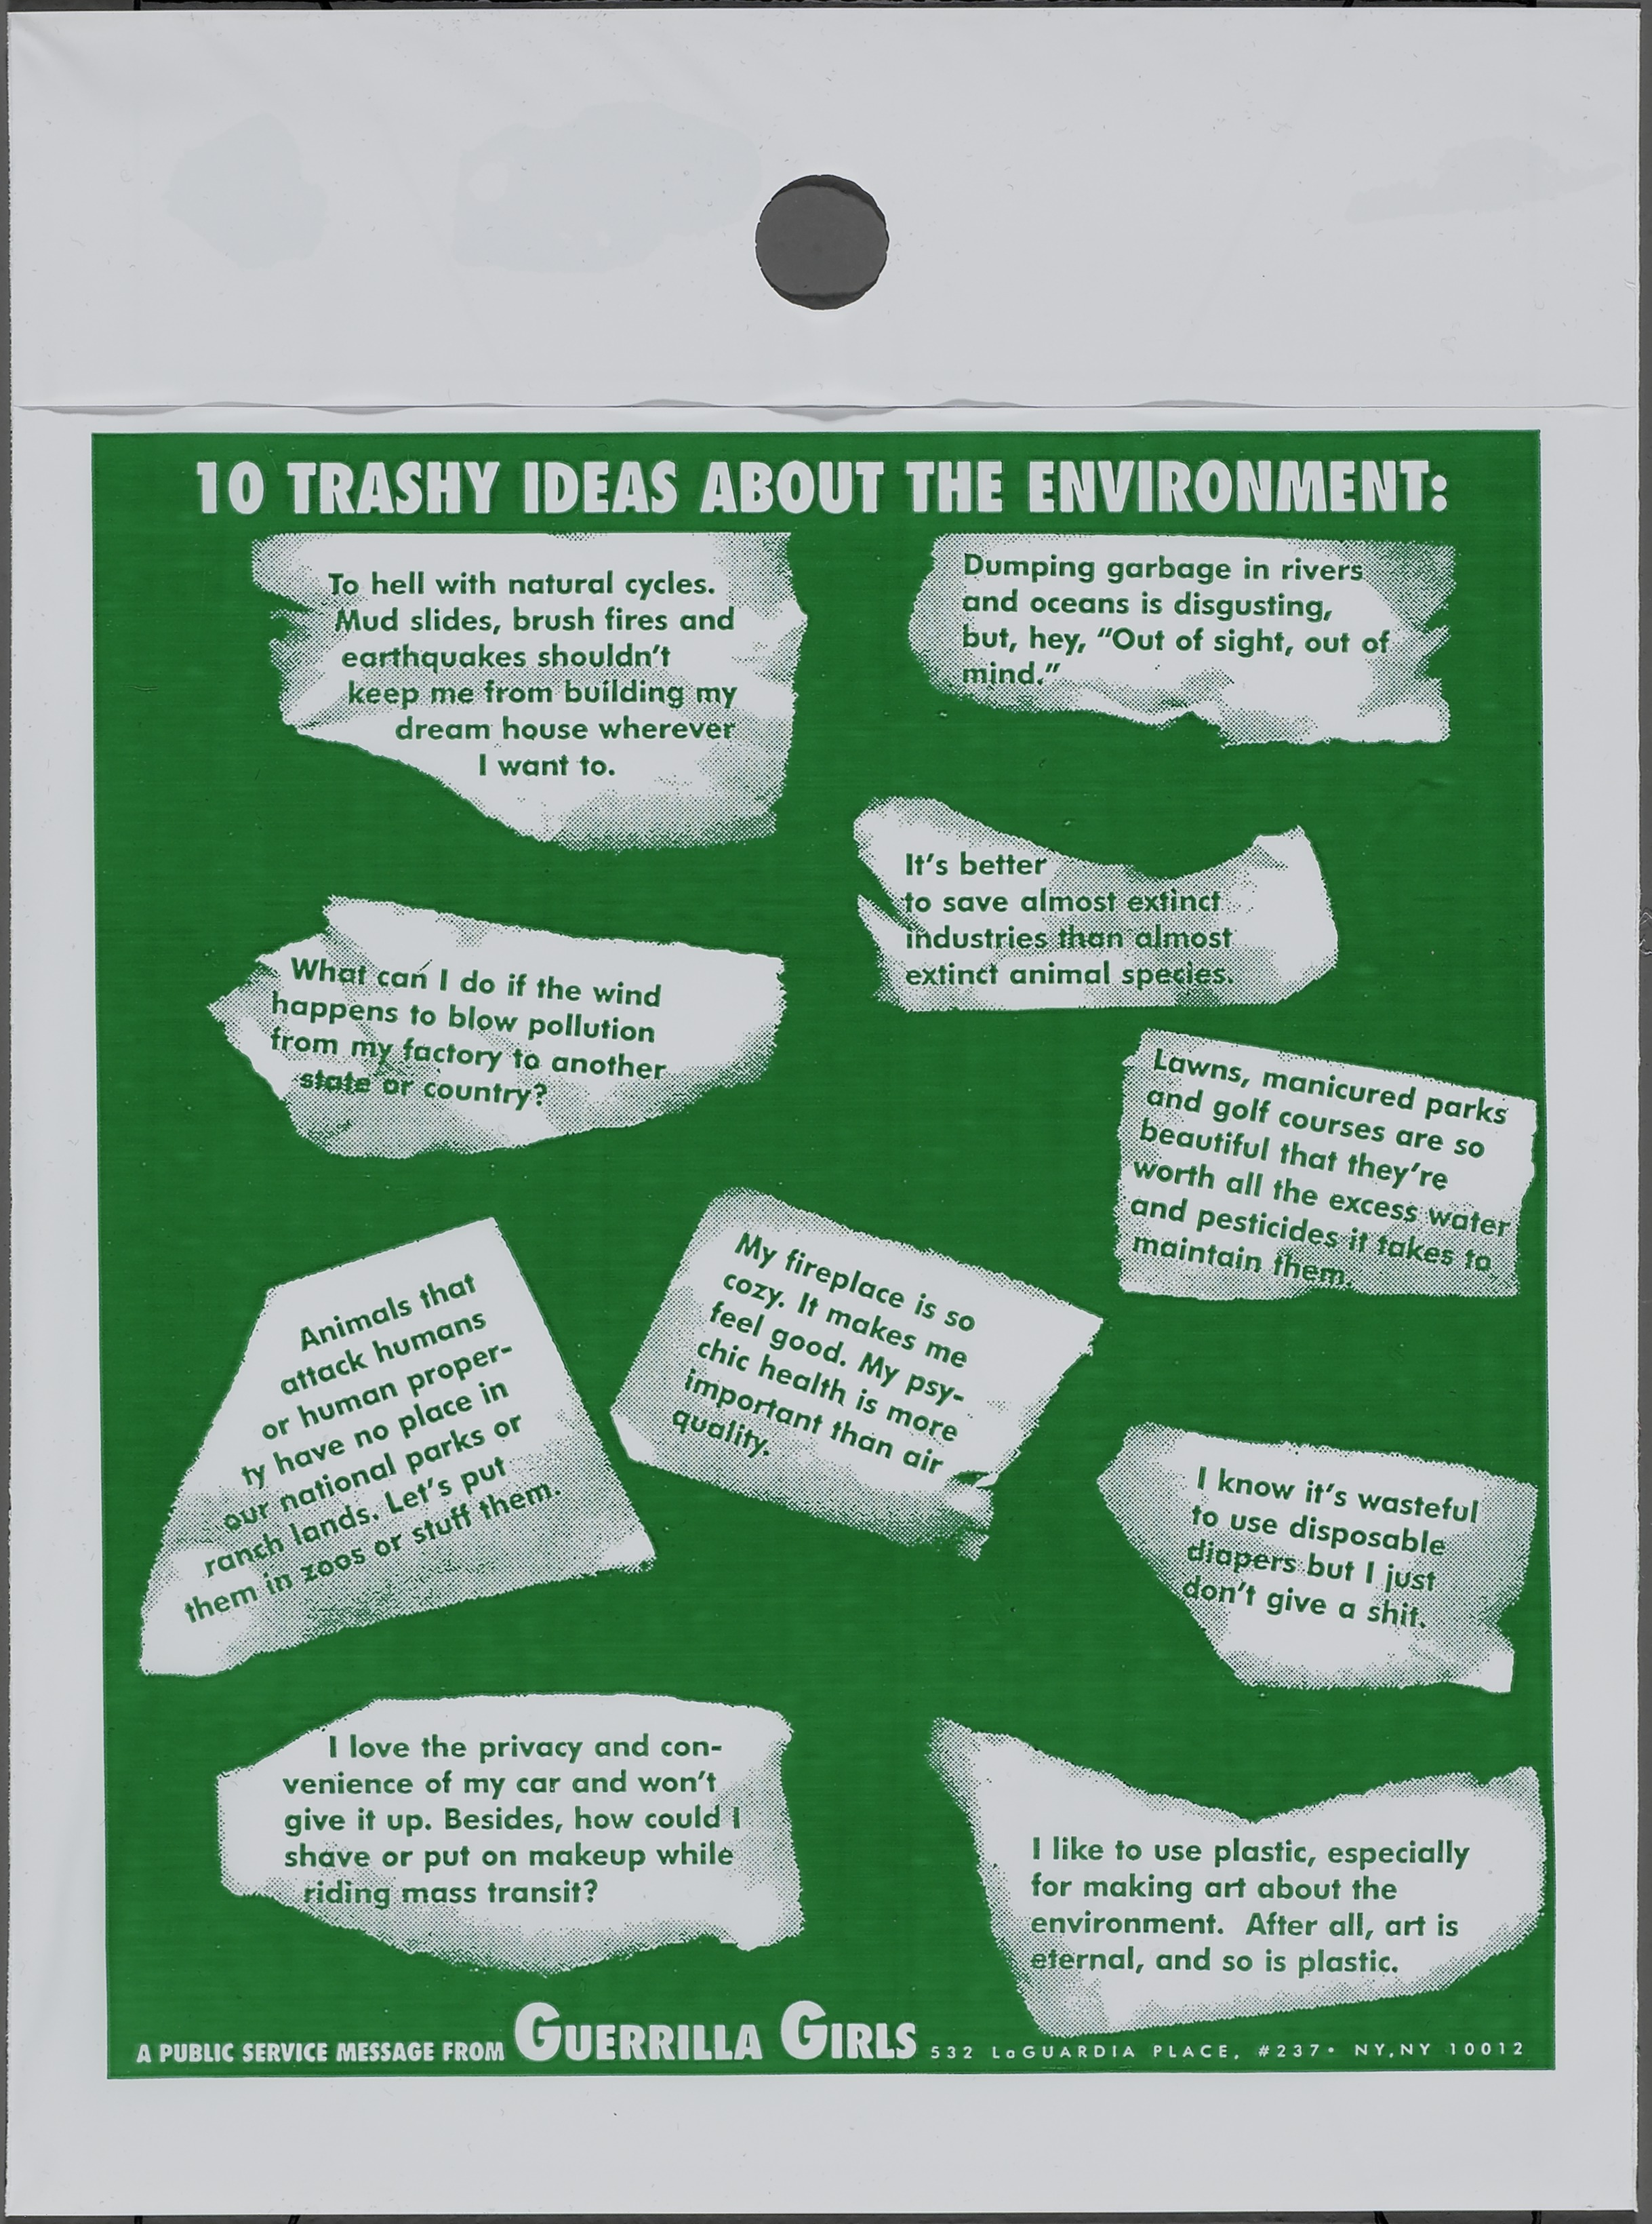 Guerrilla Girls, American, founded 1985 Publisher: Guerrilla Girls   10 Trashy Ideas about the Environment, from the portfolio Guerrilla Girls' Most Wanted: 1985-2006   1995 Offset lithograph on paper 4/50 Overall: 12 1/8 x 9 in. (30.8 x 22.8 cm)   Hood Museum of Art, Dartmouth College: Purchased through the Anonymous Fund #144 ; 2006.83.17  ©  Guerrilla Girls